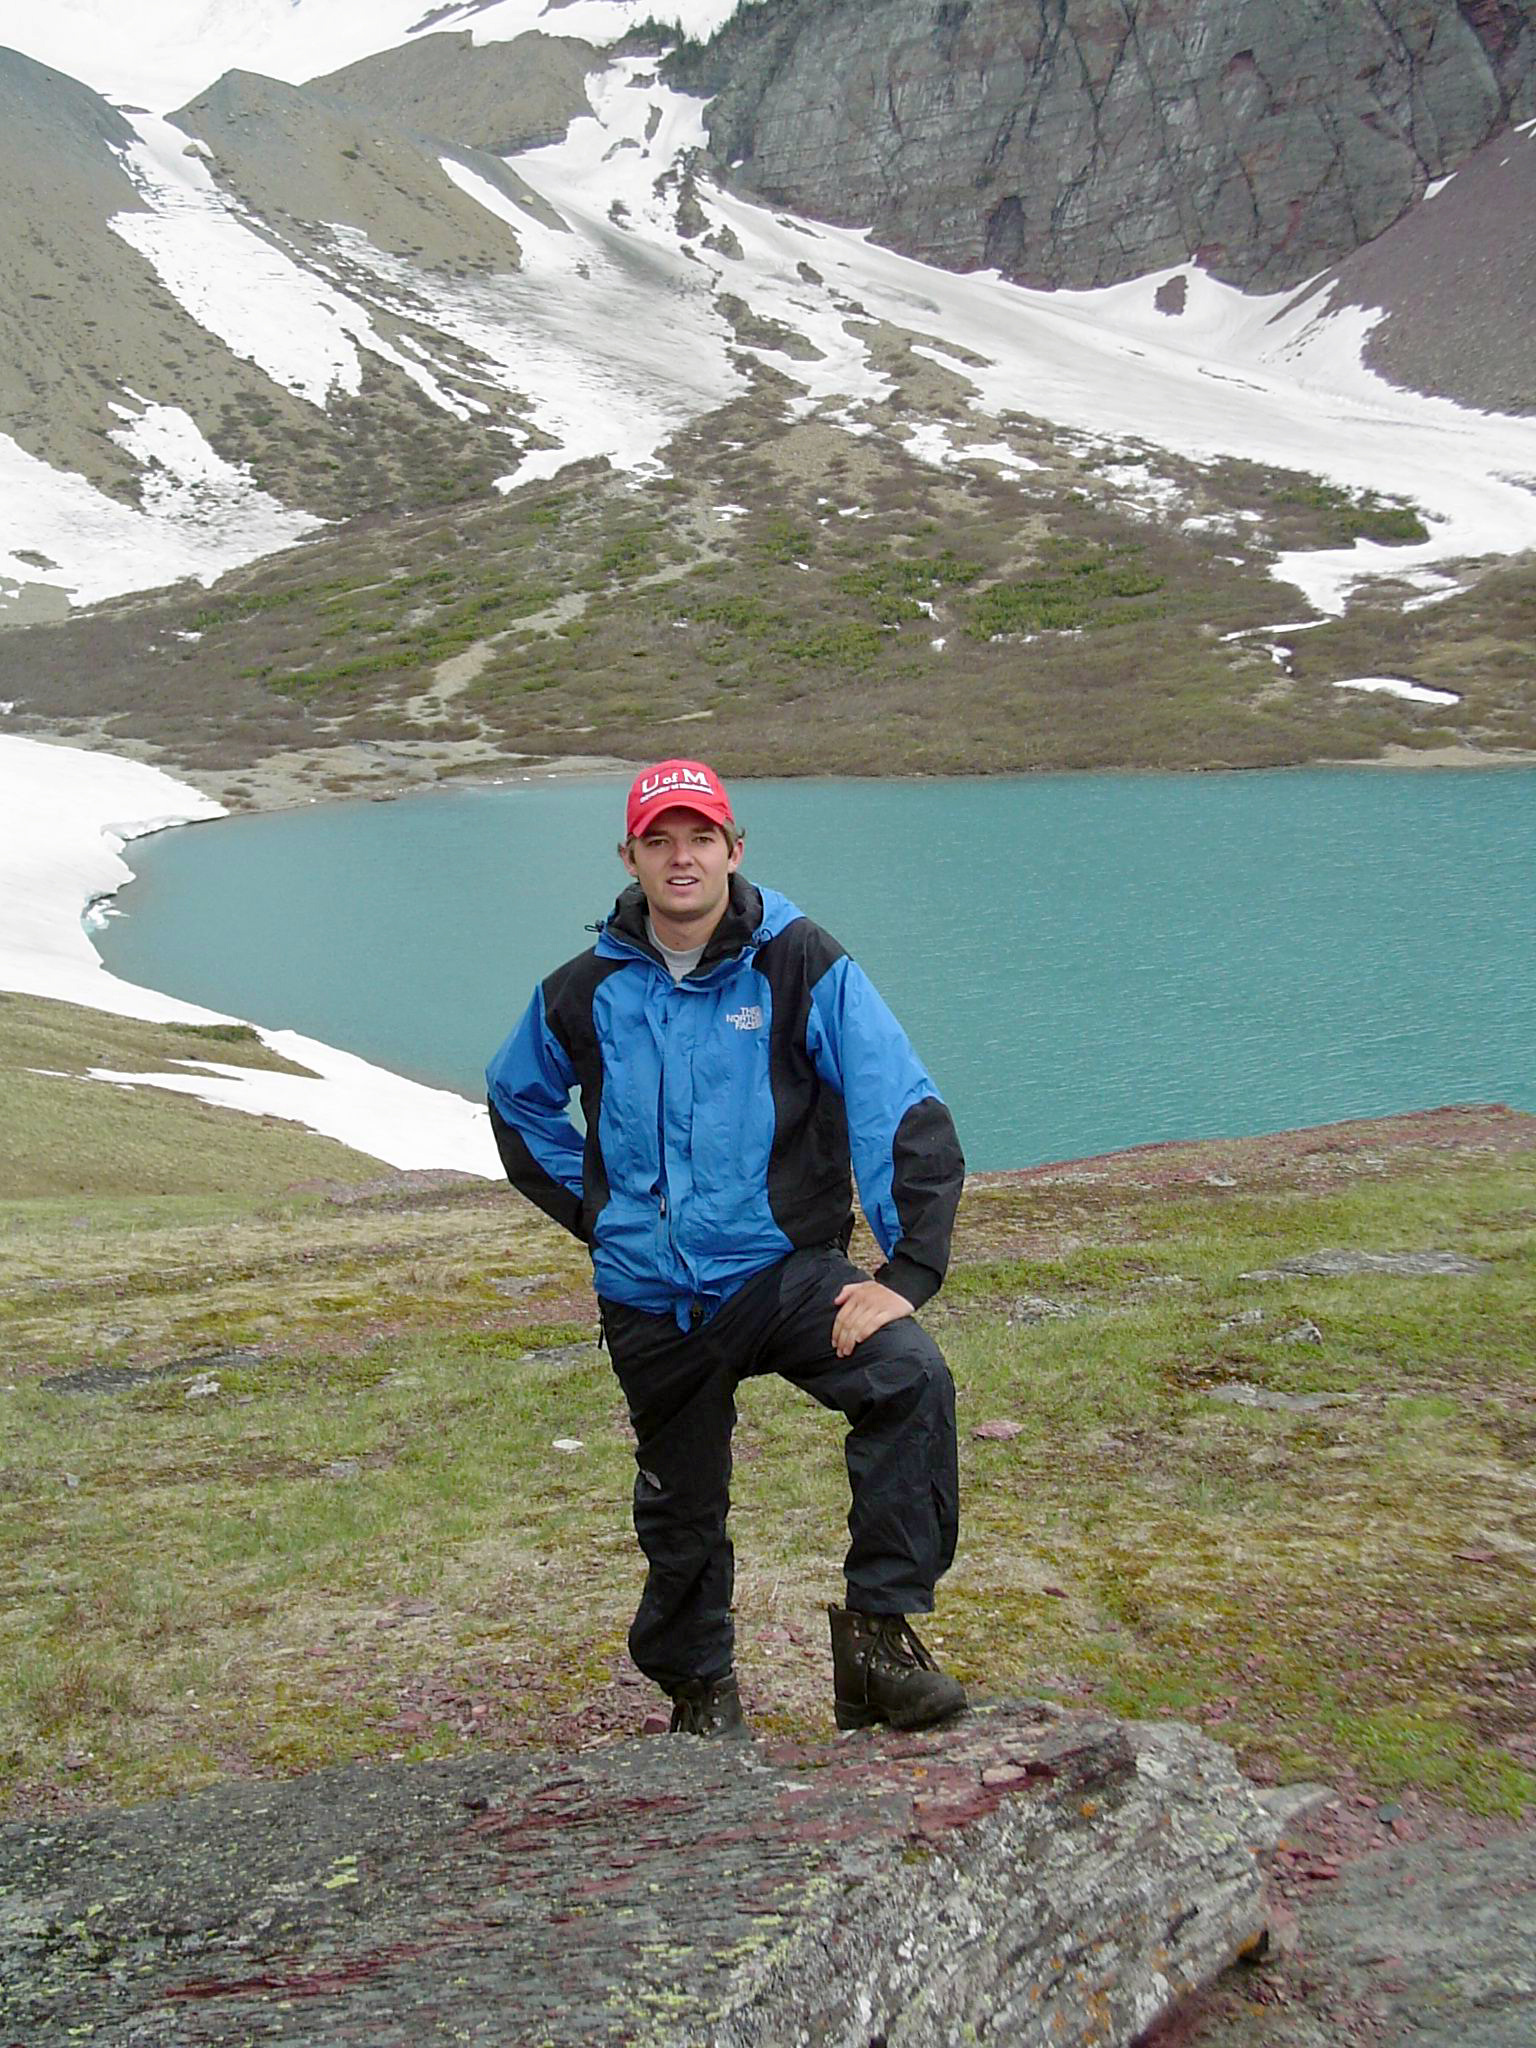 A stalwart hiker poses at Cracker Lake, very near the location of the Cracker Jack Mine. Photo Credit to Howard Stone.